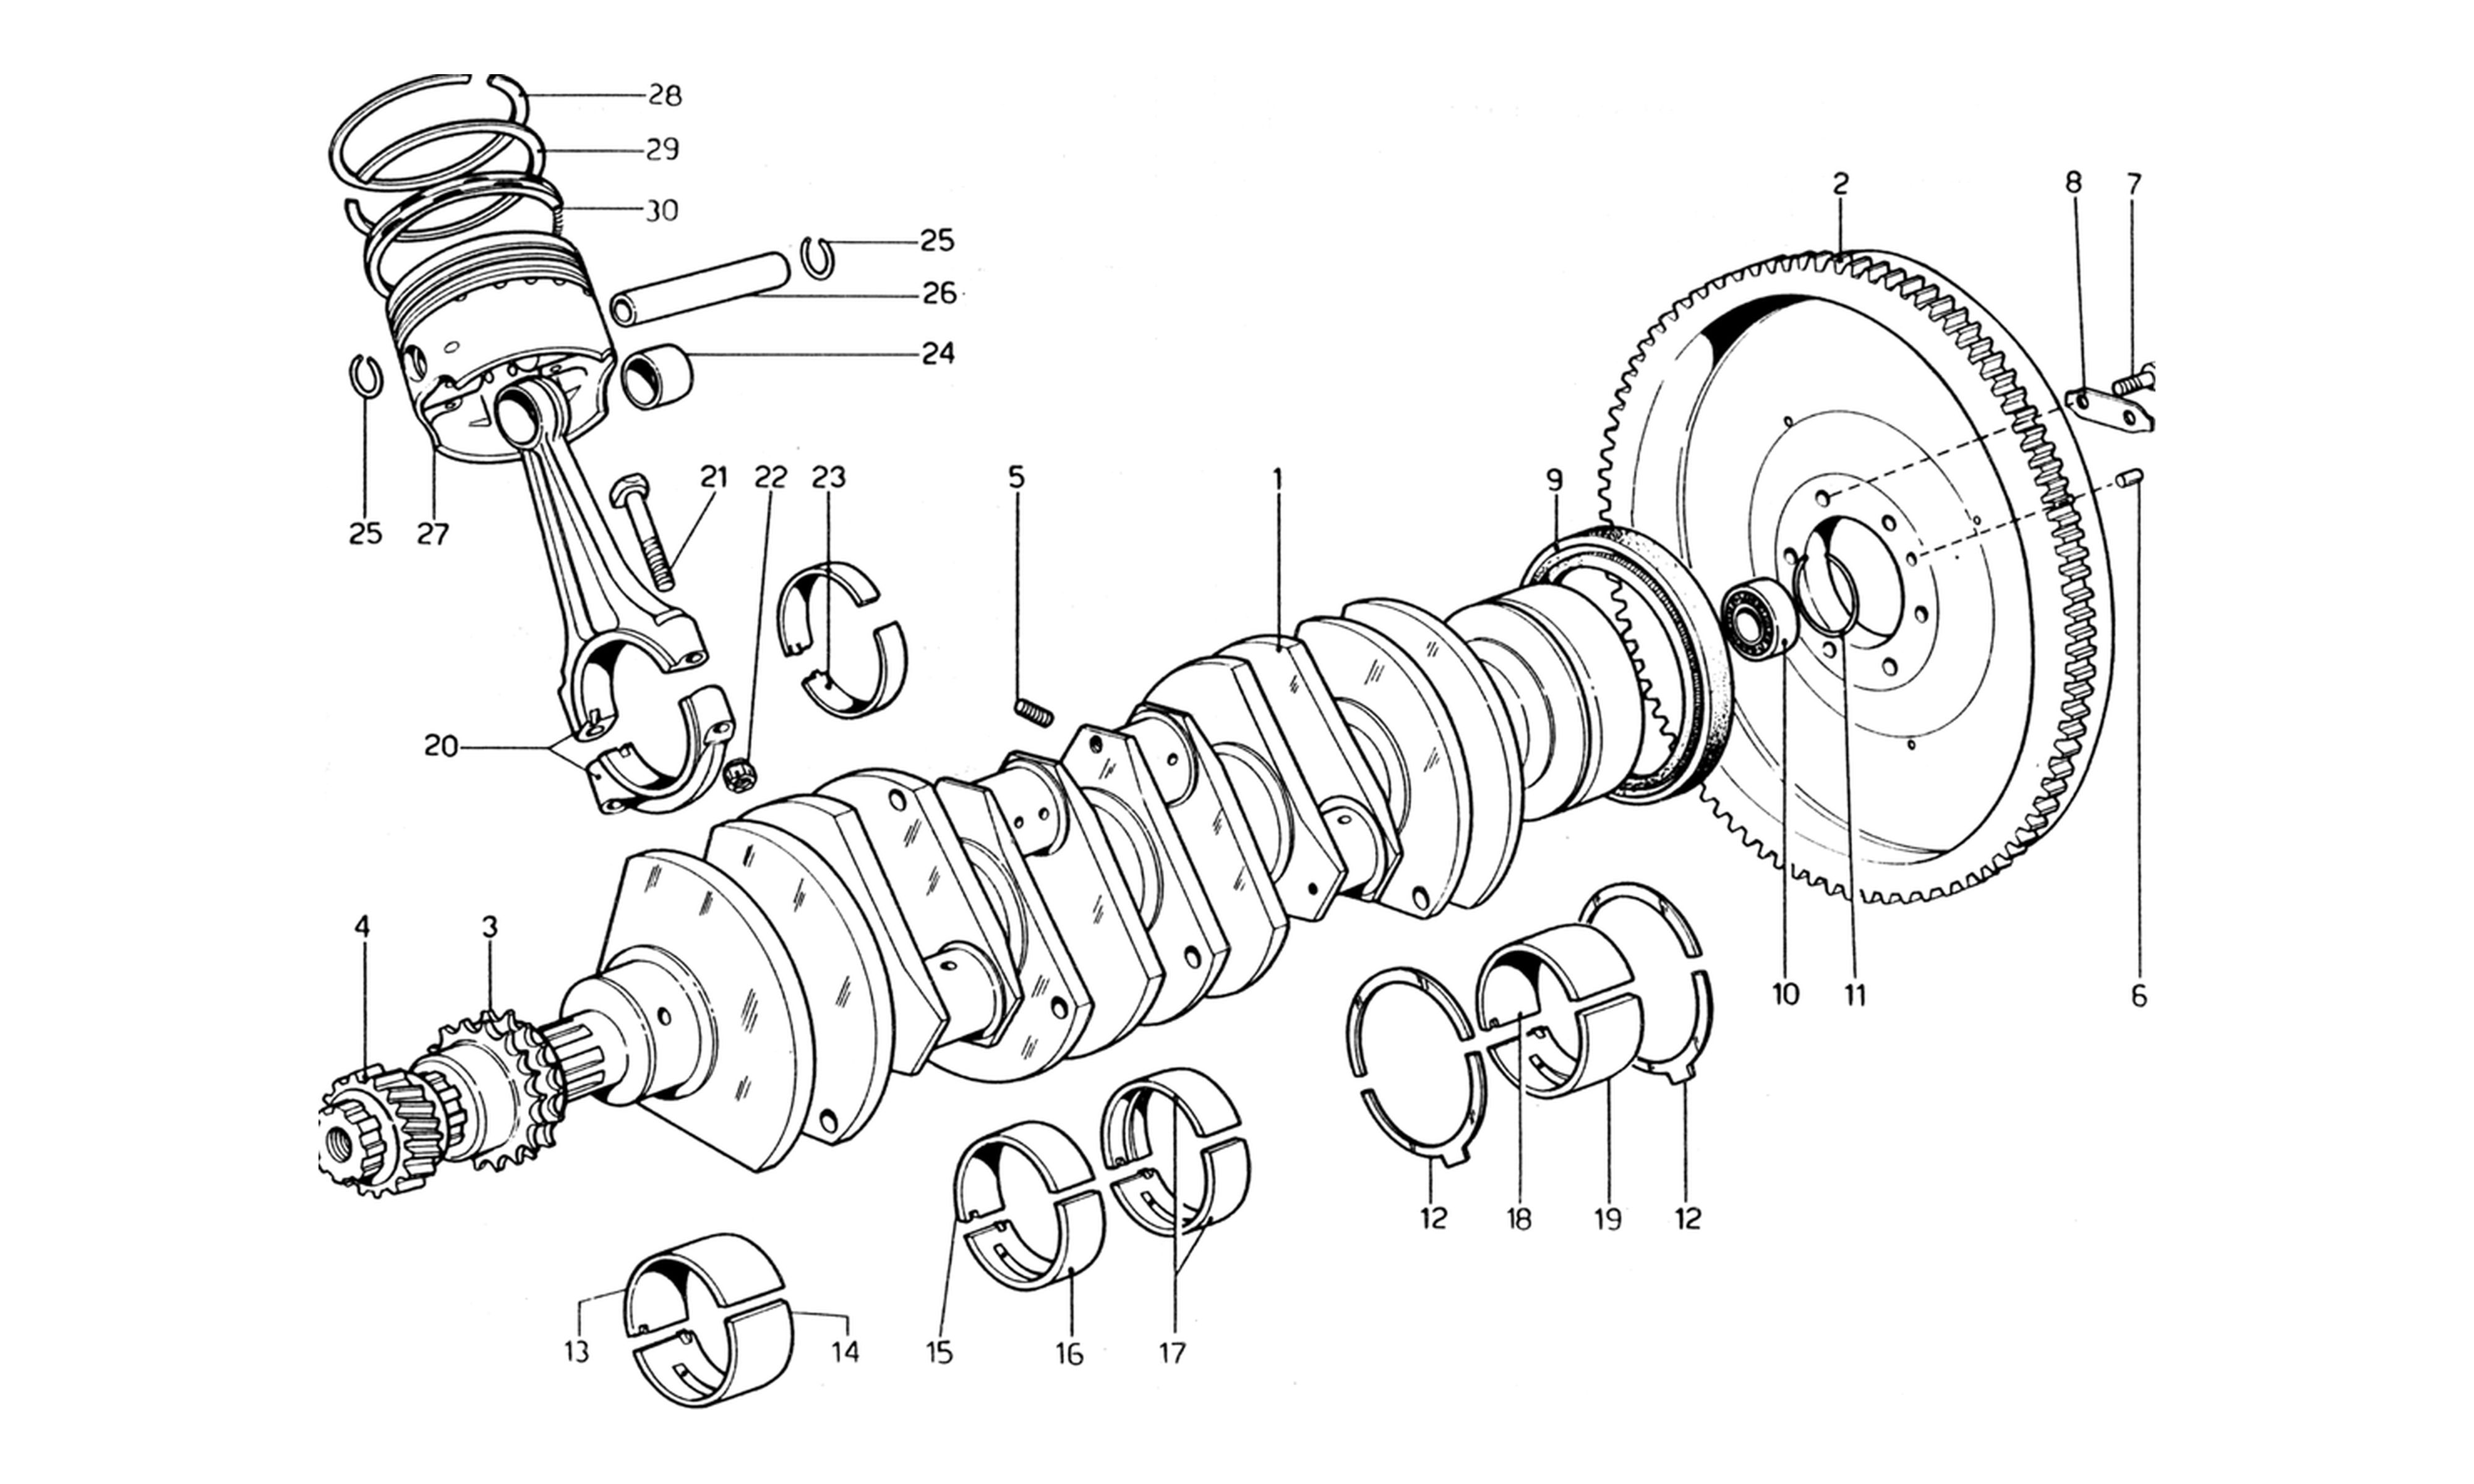 Table 3 - Crankshaft, Connecting Rods And Pistons